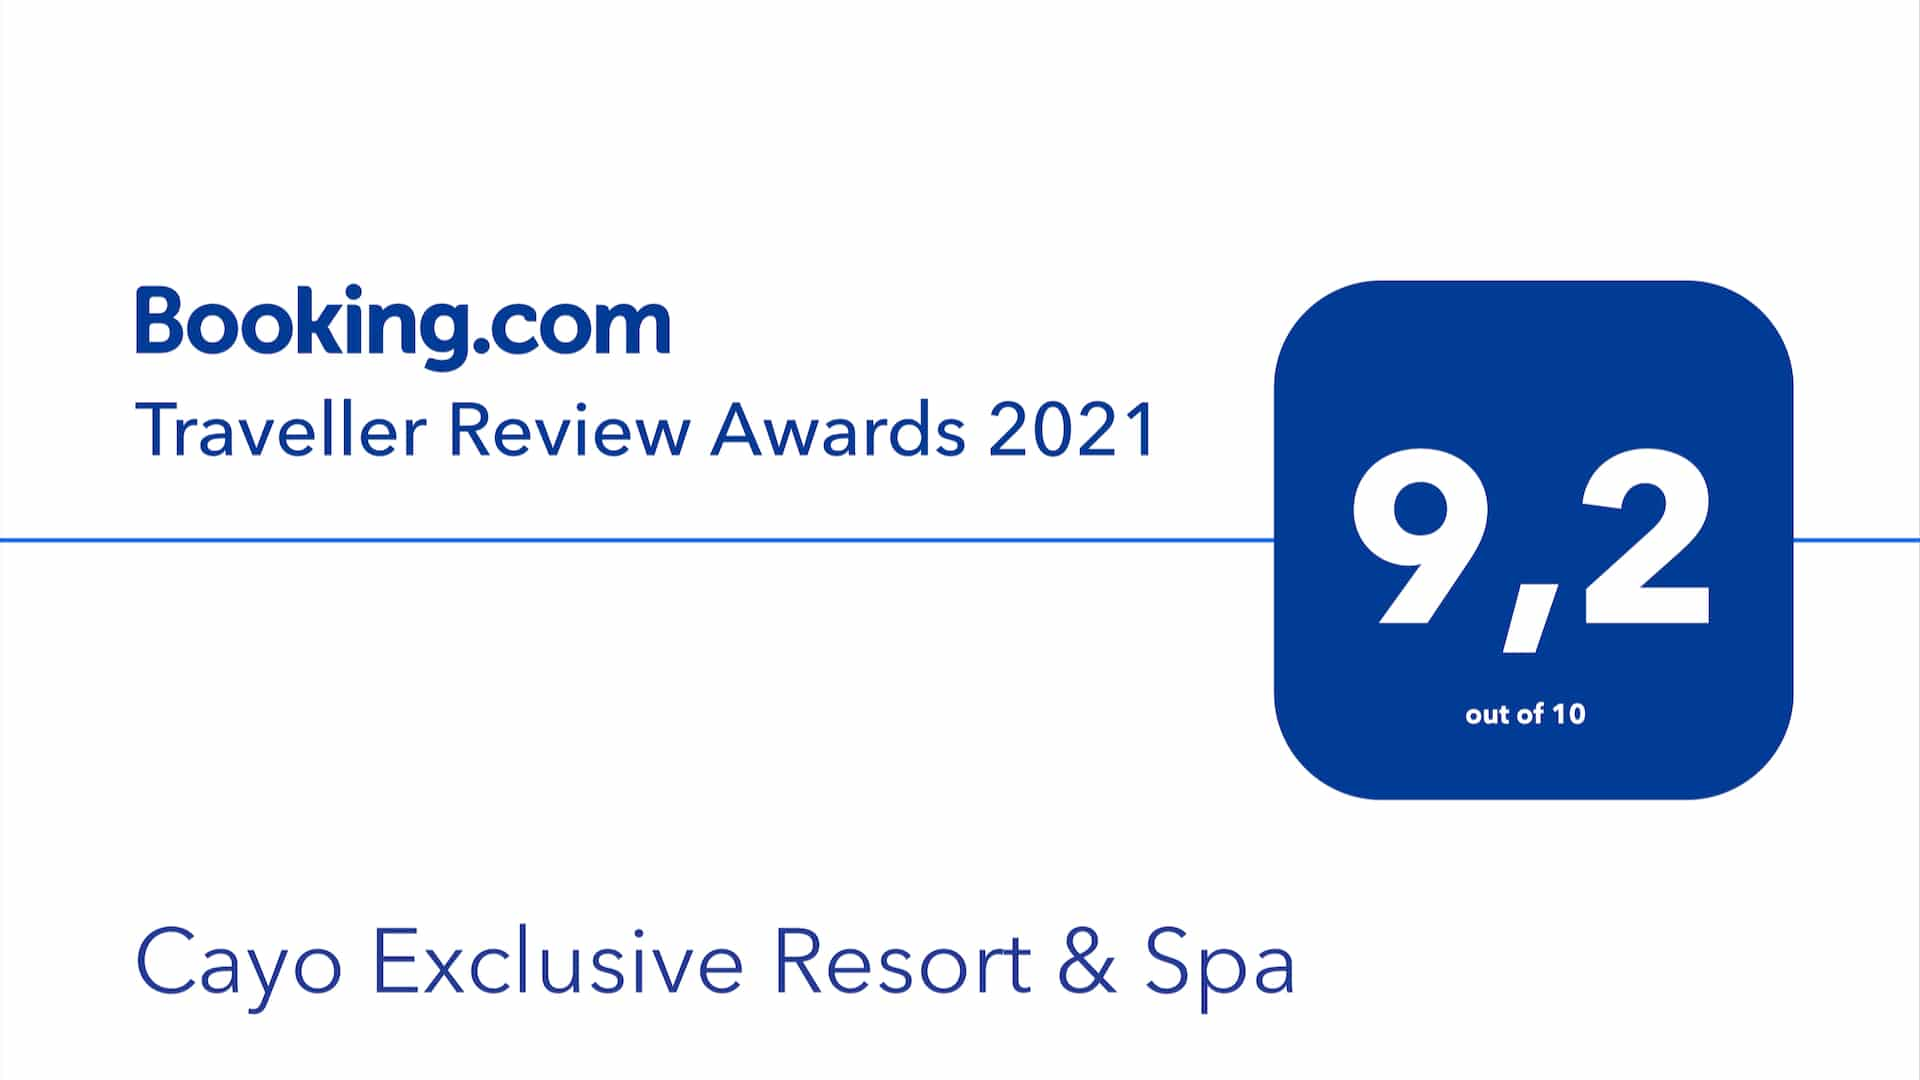 Cayo receives the Traveler Review Award 2021 from Booking.com